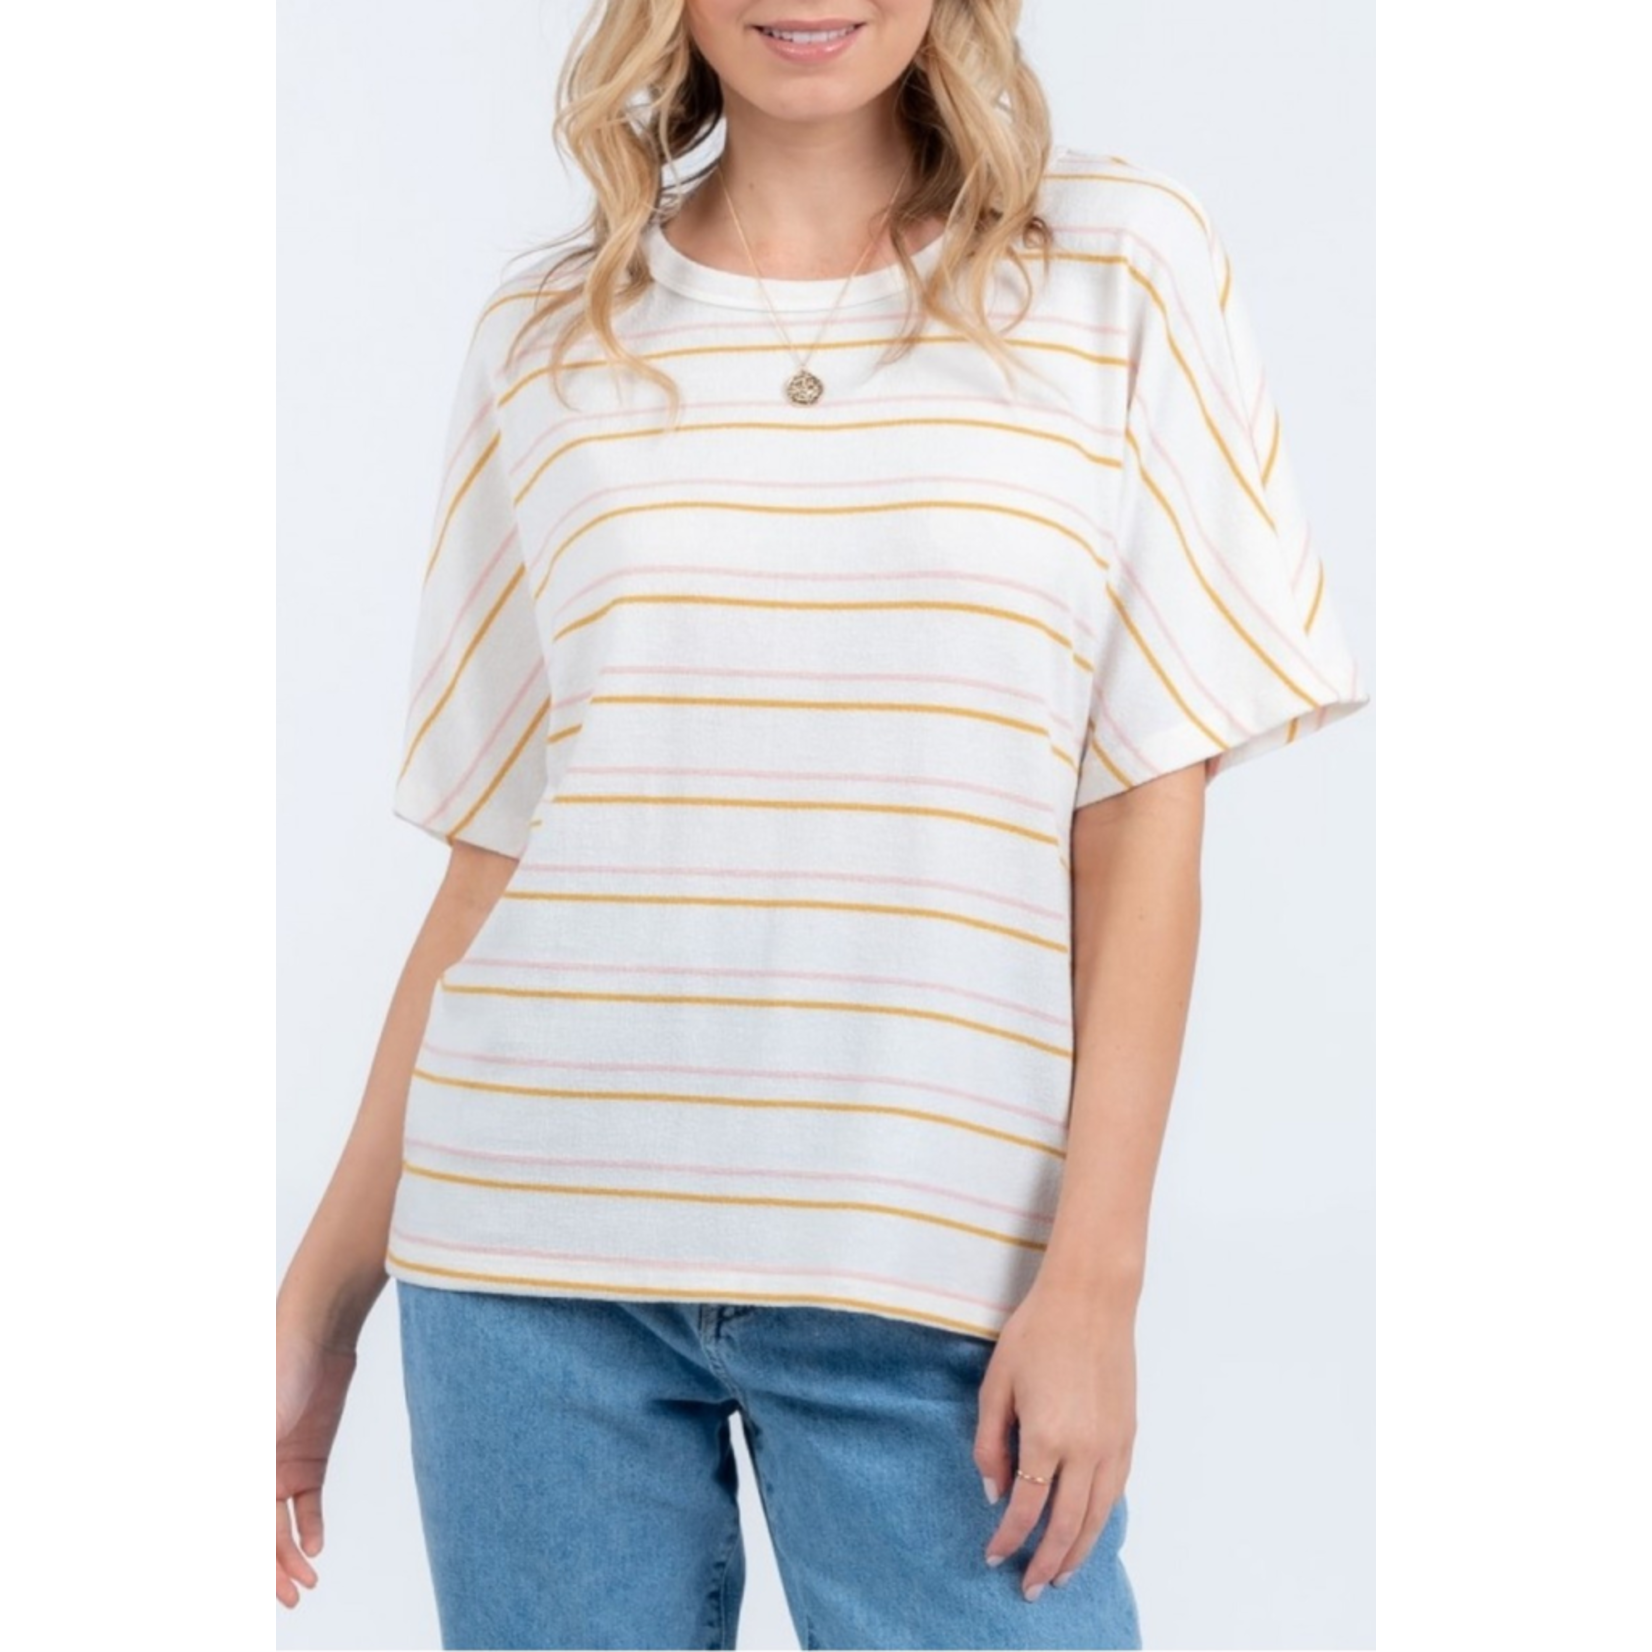 Everly Twist back knit top